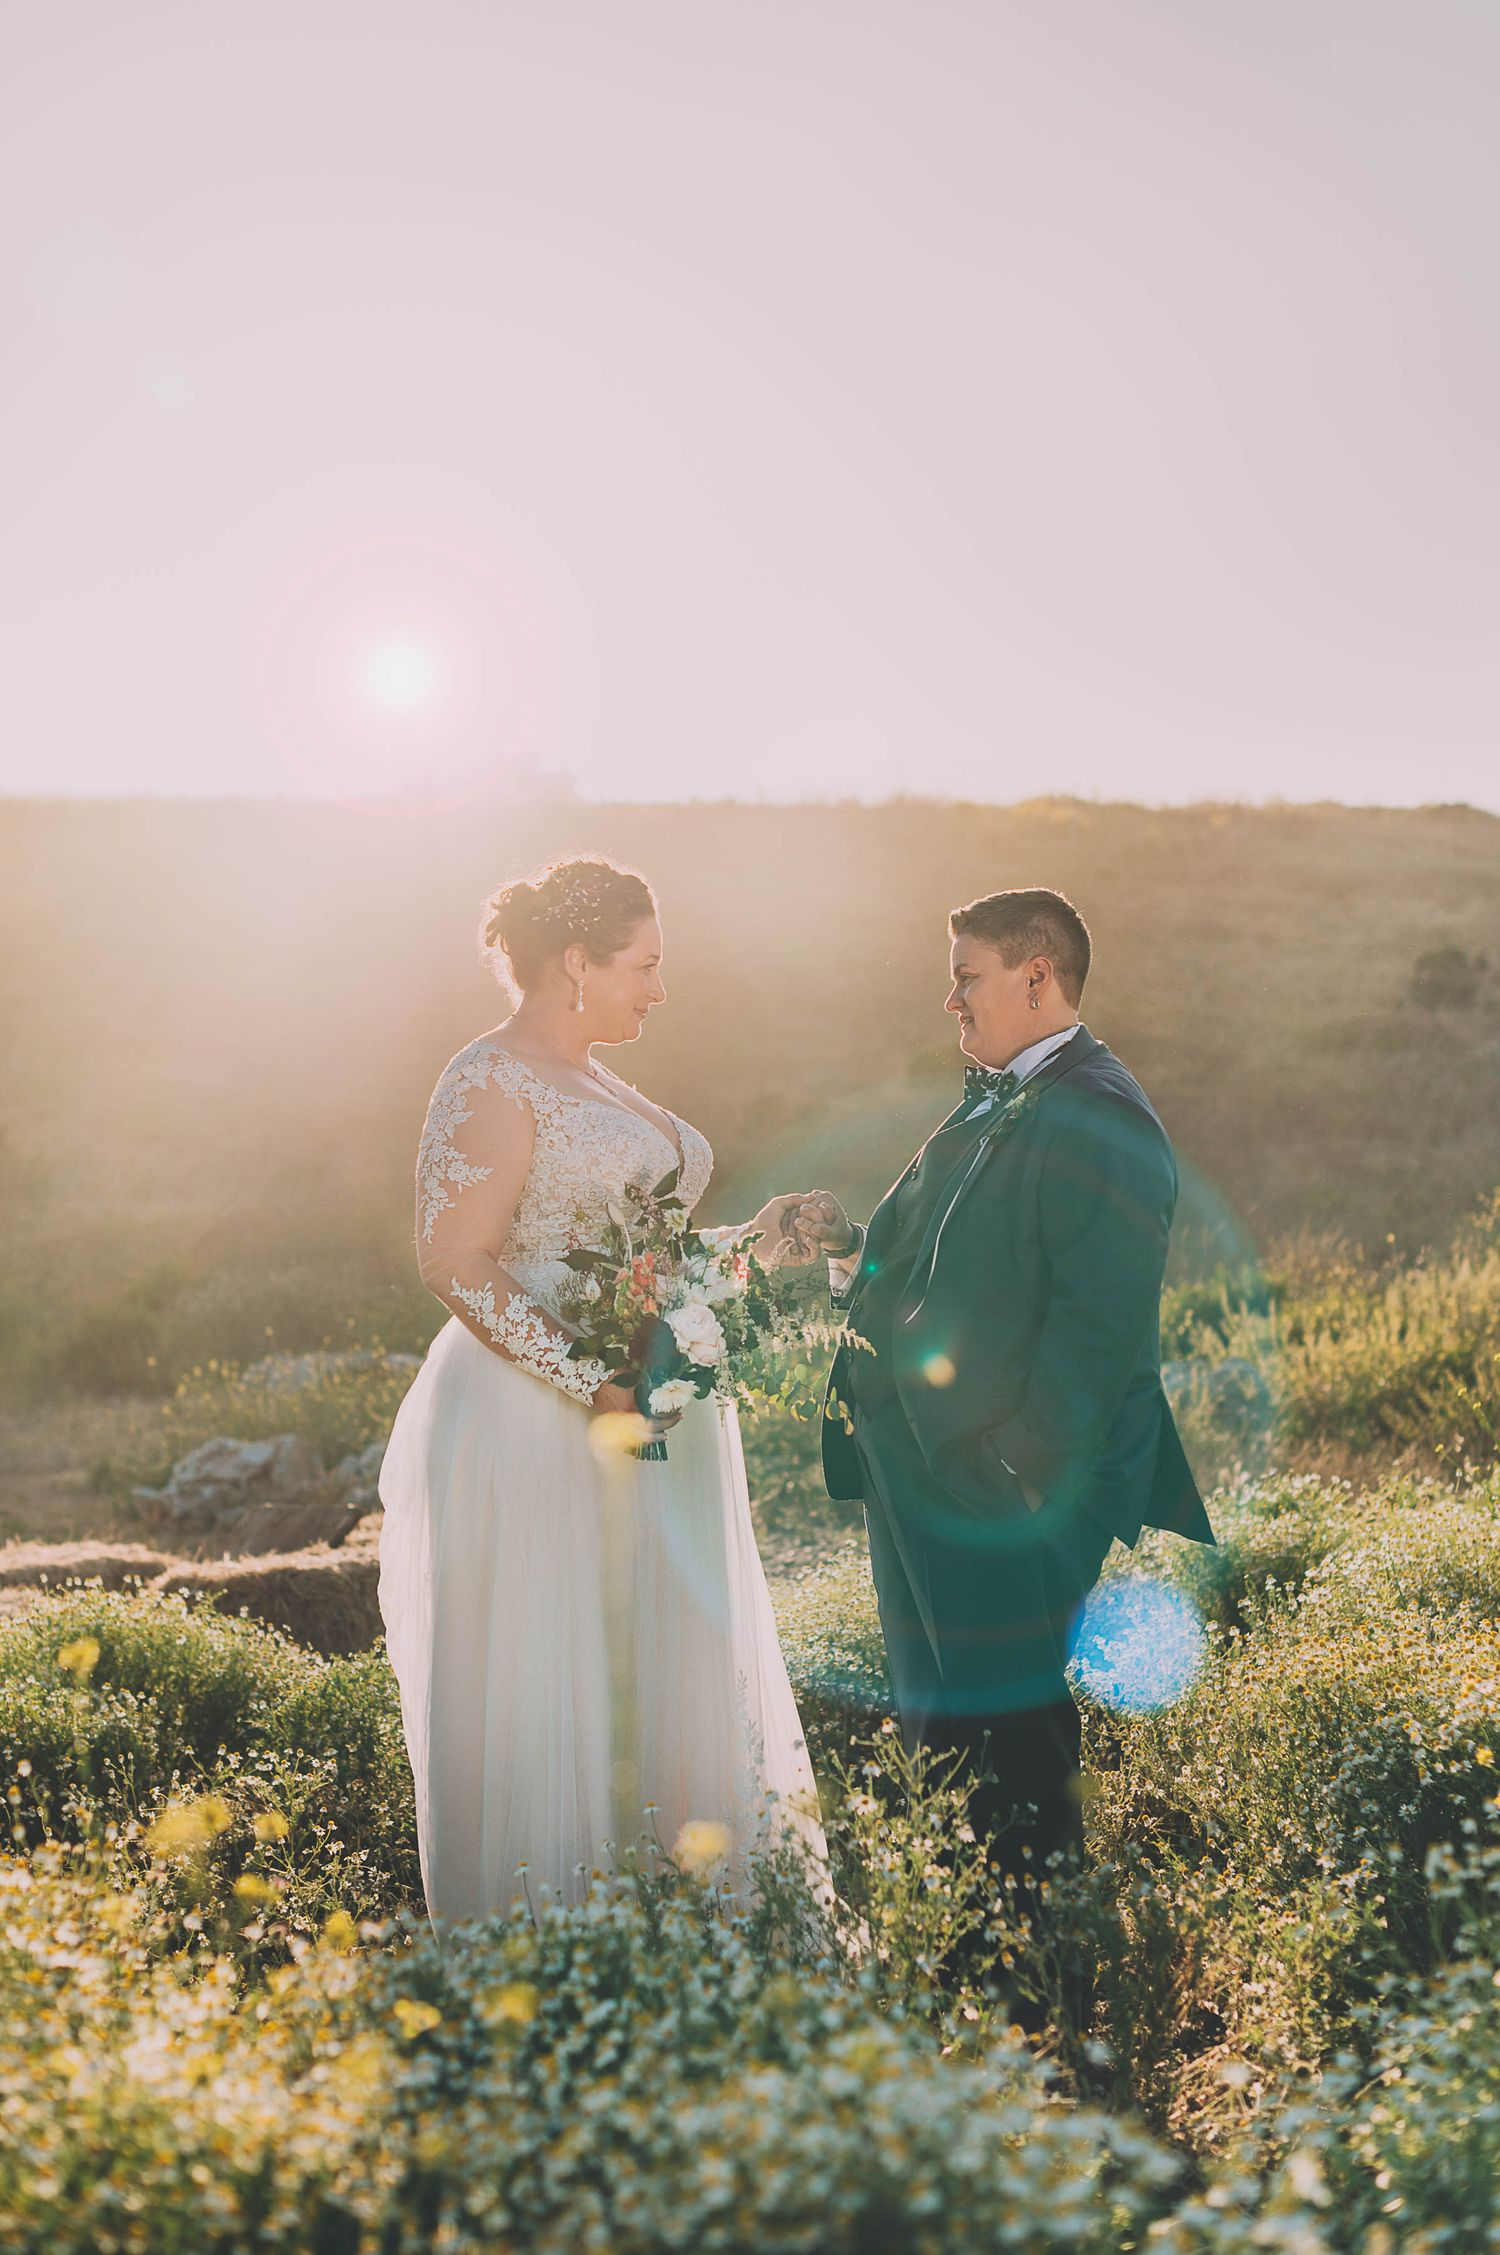 Lesbian couple wedding portrait at sunset with sun flare in Santa Cruz.